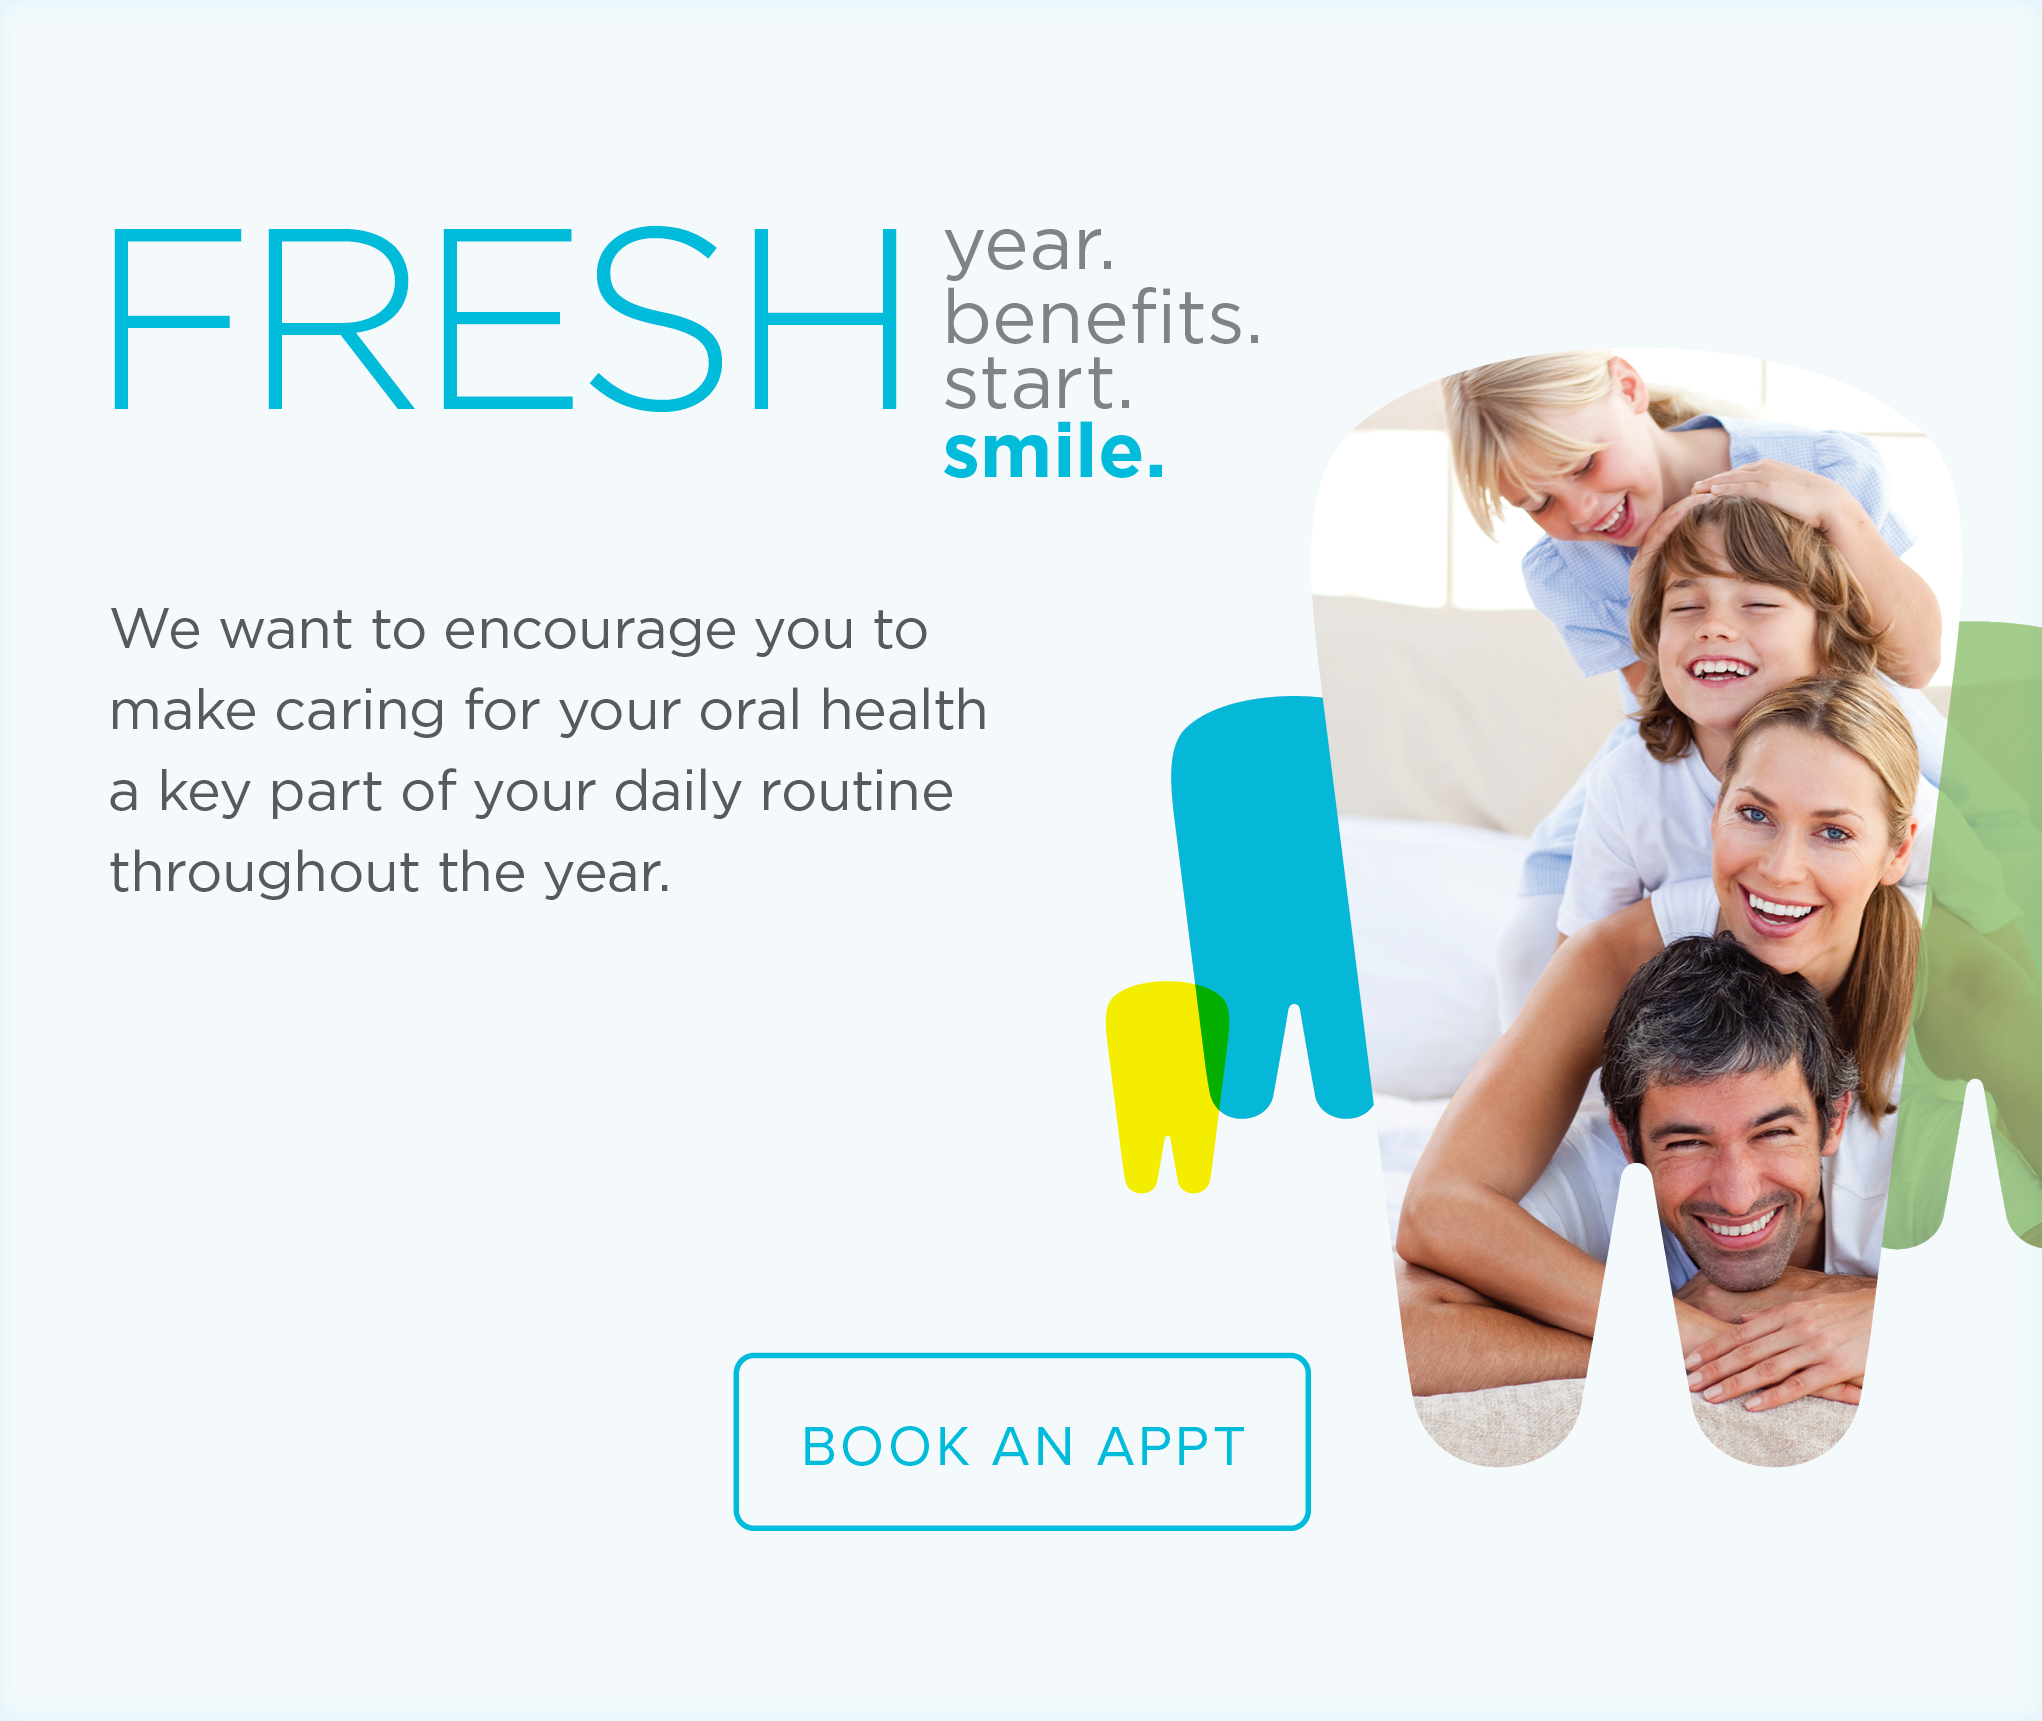 Green Valley Modern Dentistry - Make the Most of Your Benefits